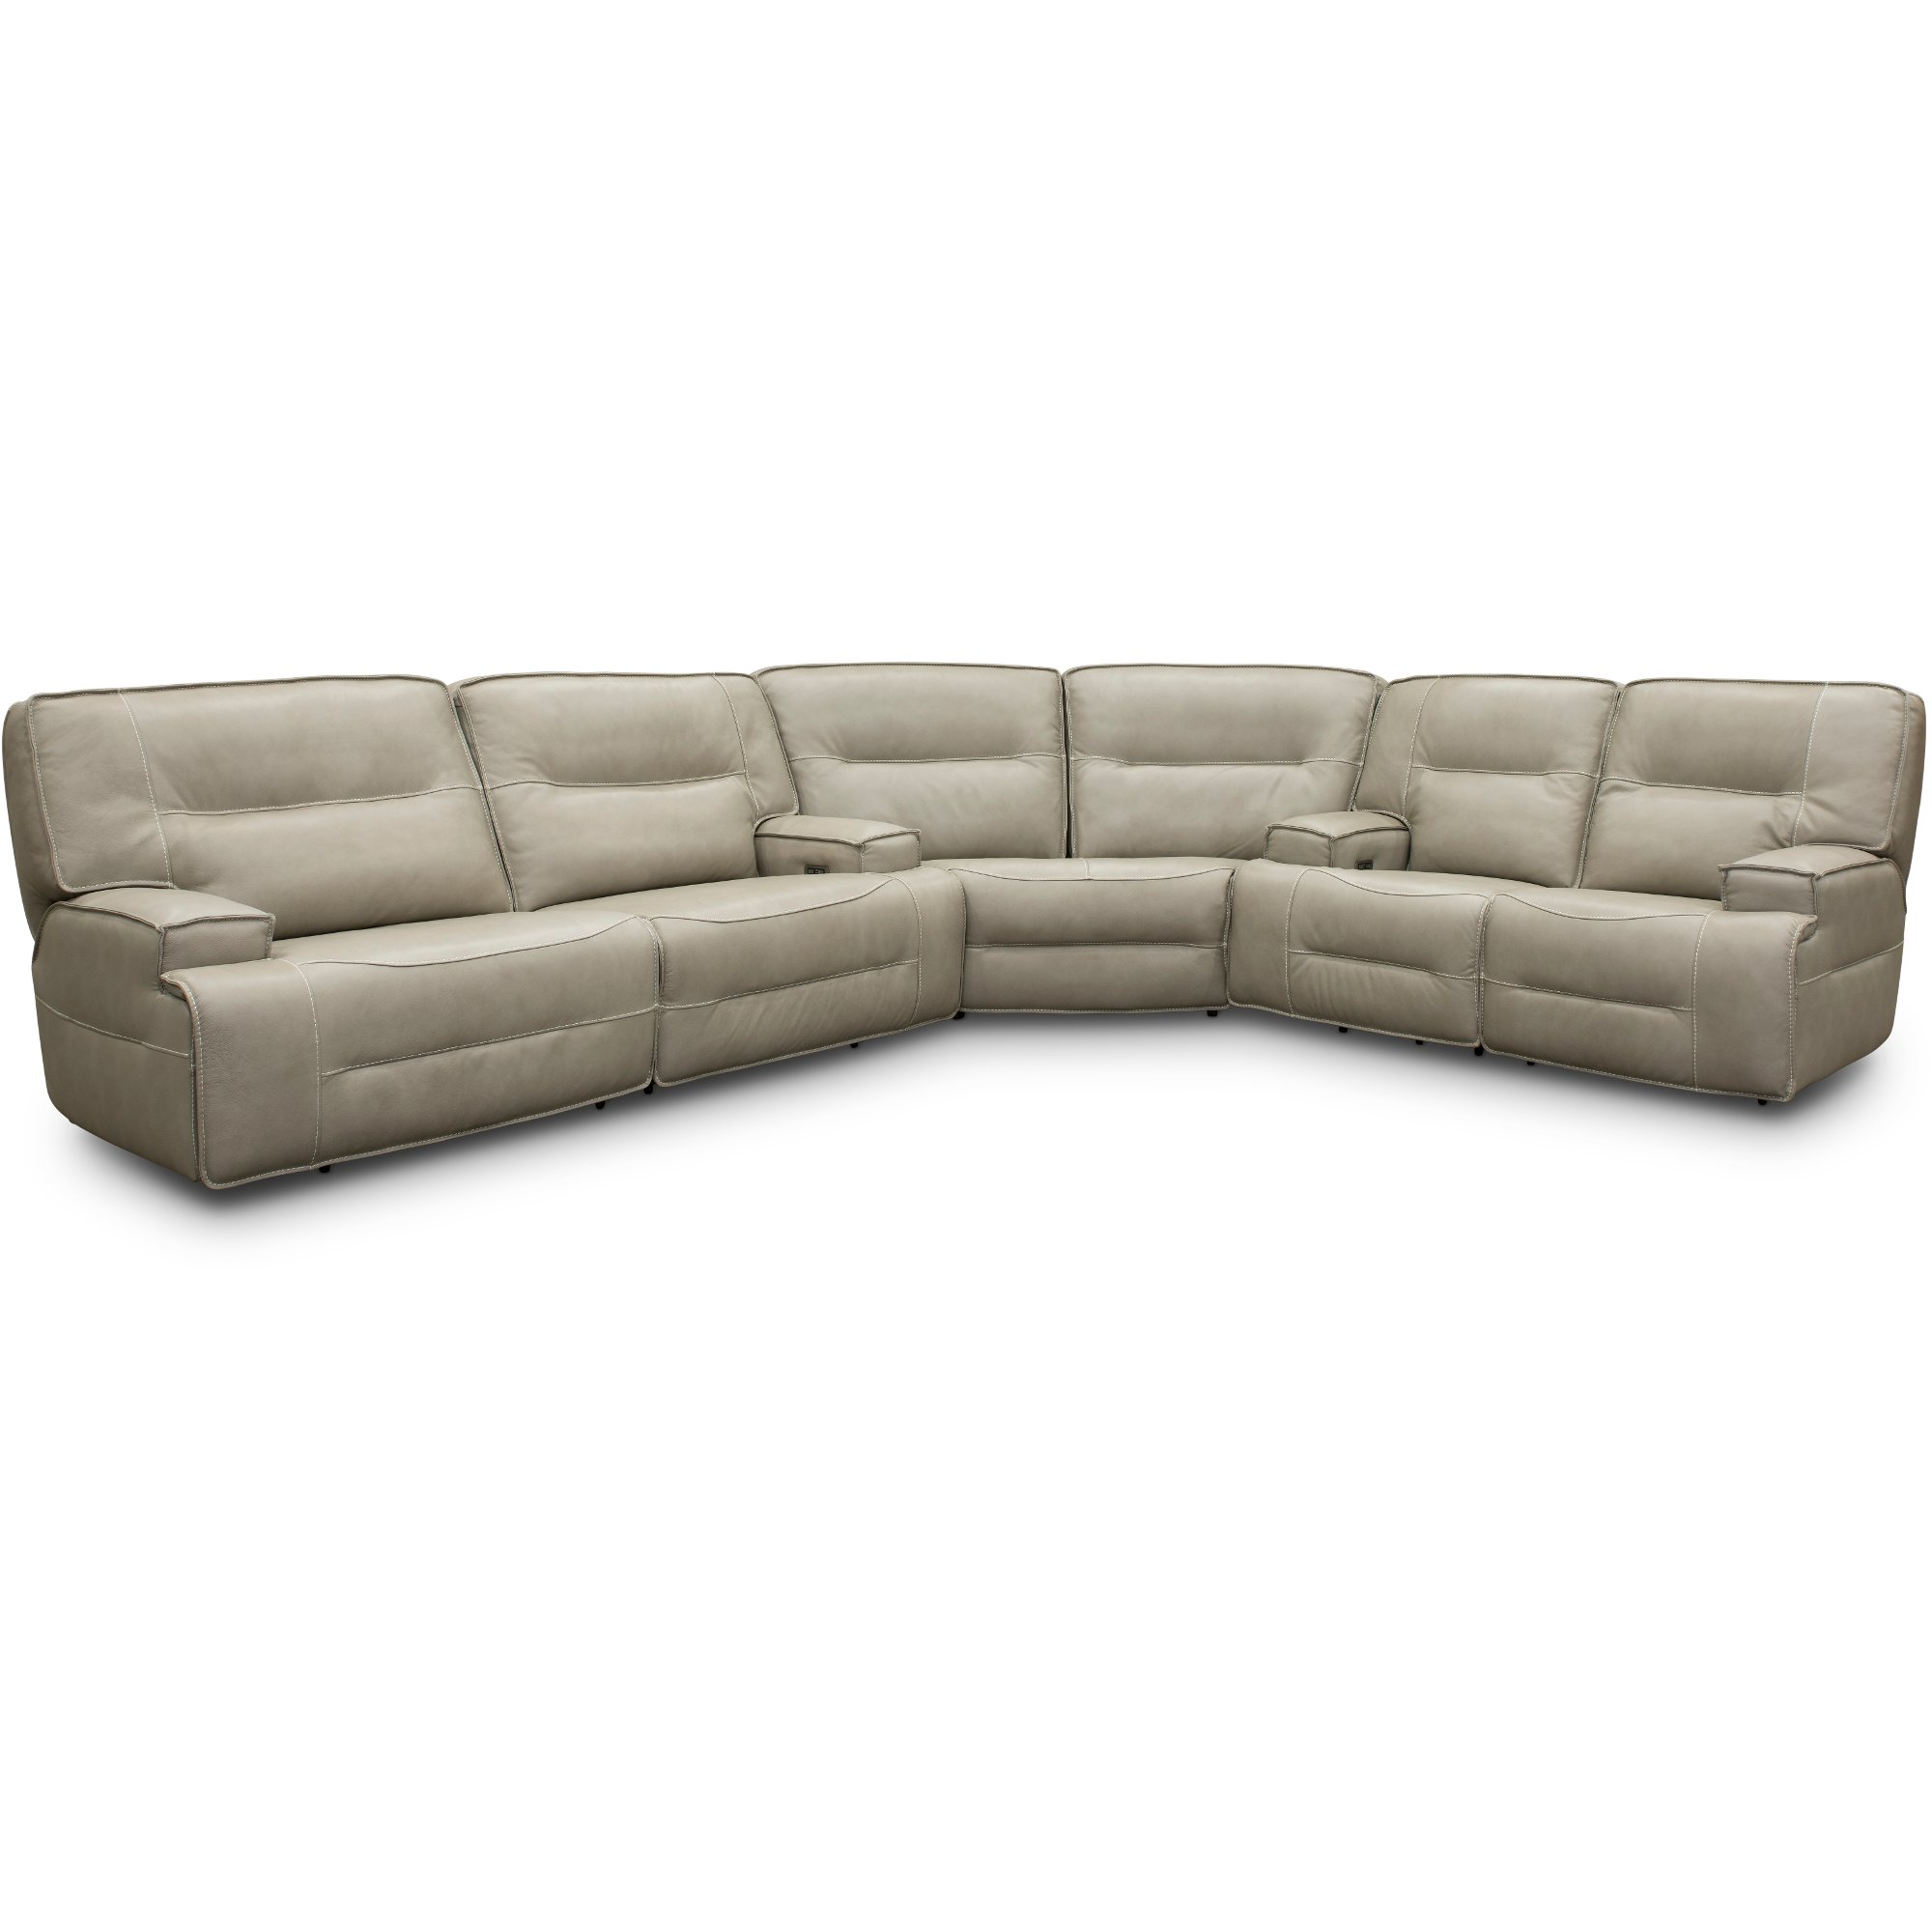 Dove Beige Leather Match Power Reclining Sectional Sofa Rockies